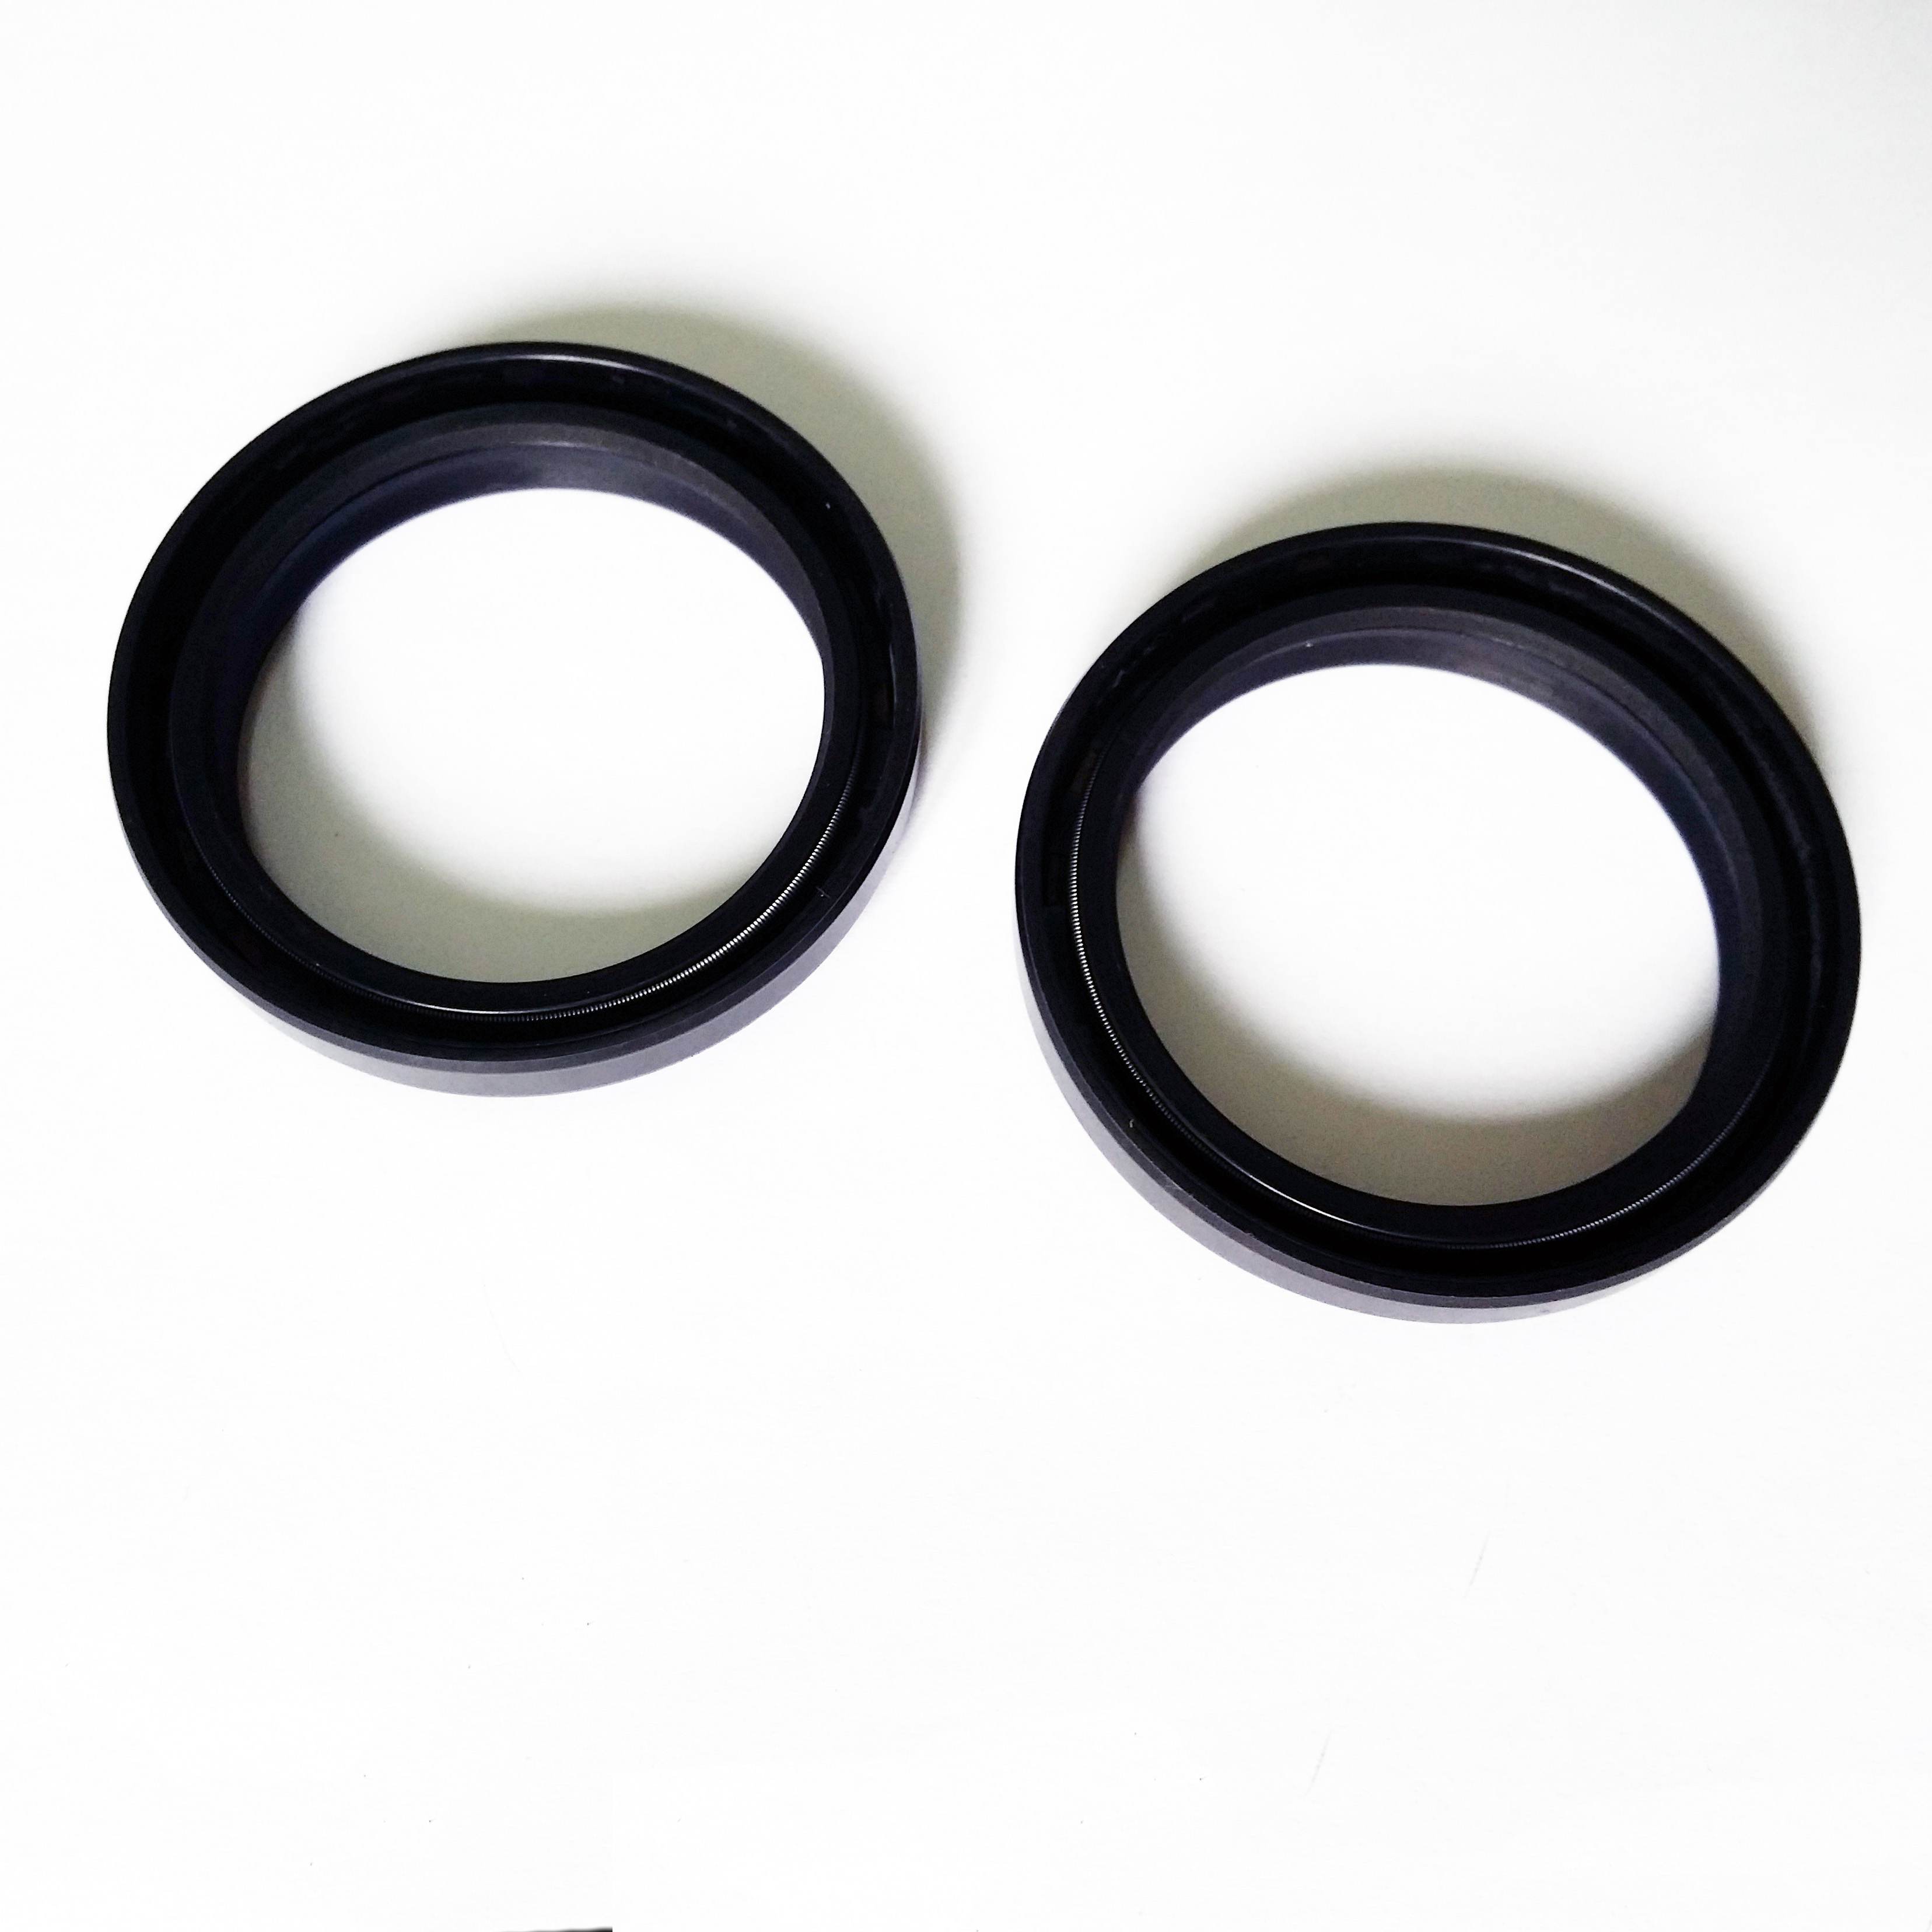 K-Tech TM EN300   2007-2016 NOK Front Fork Oil Seals 50x63x11mm